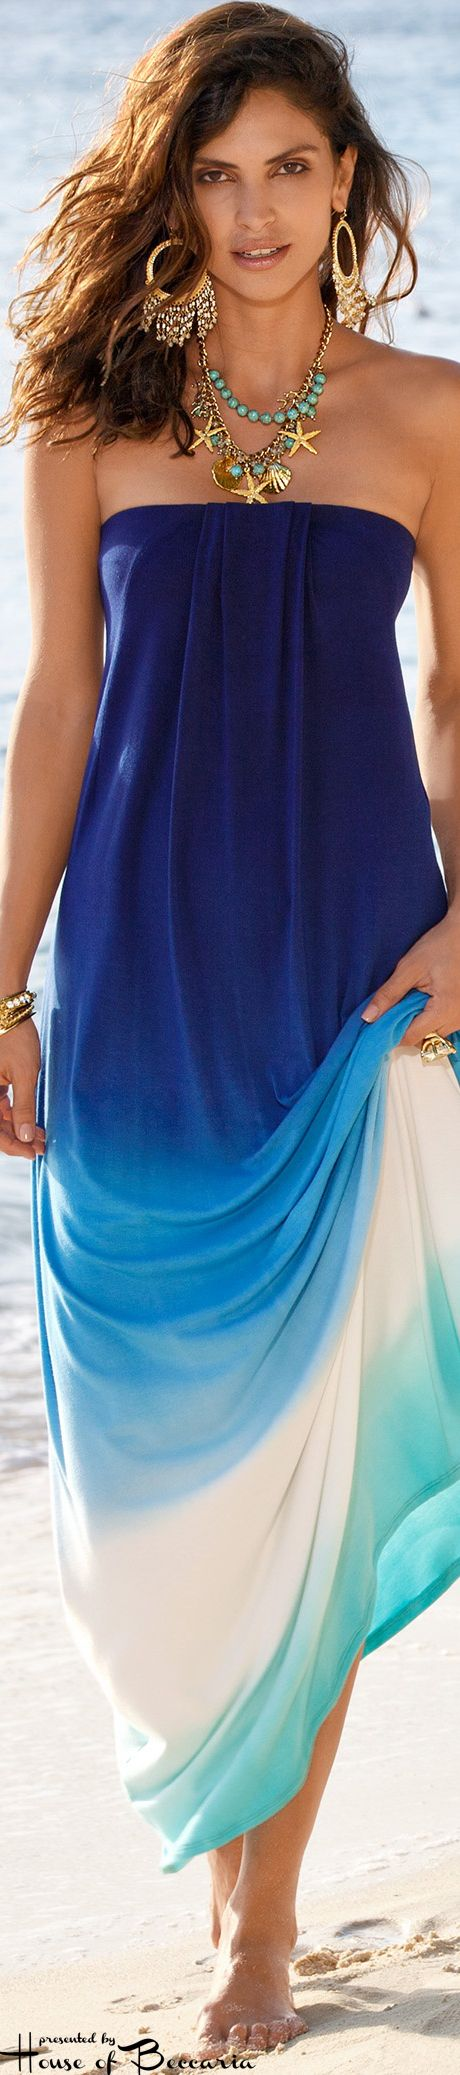 The perfect blue beach outfit to make a statement on Anna Maria Island.